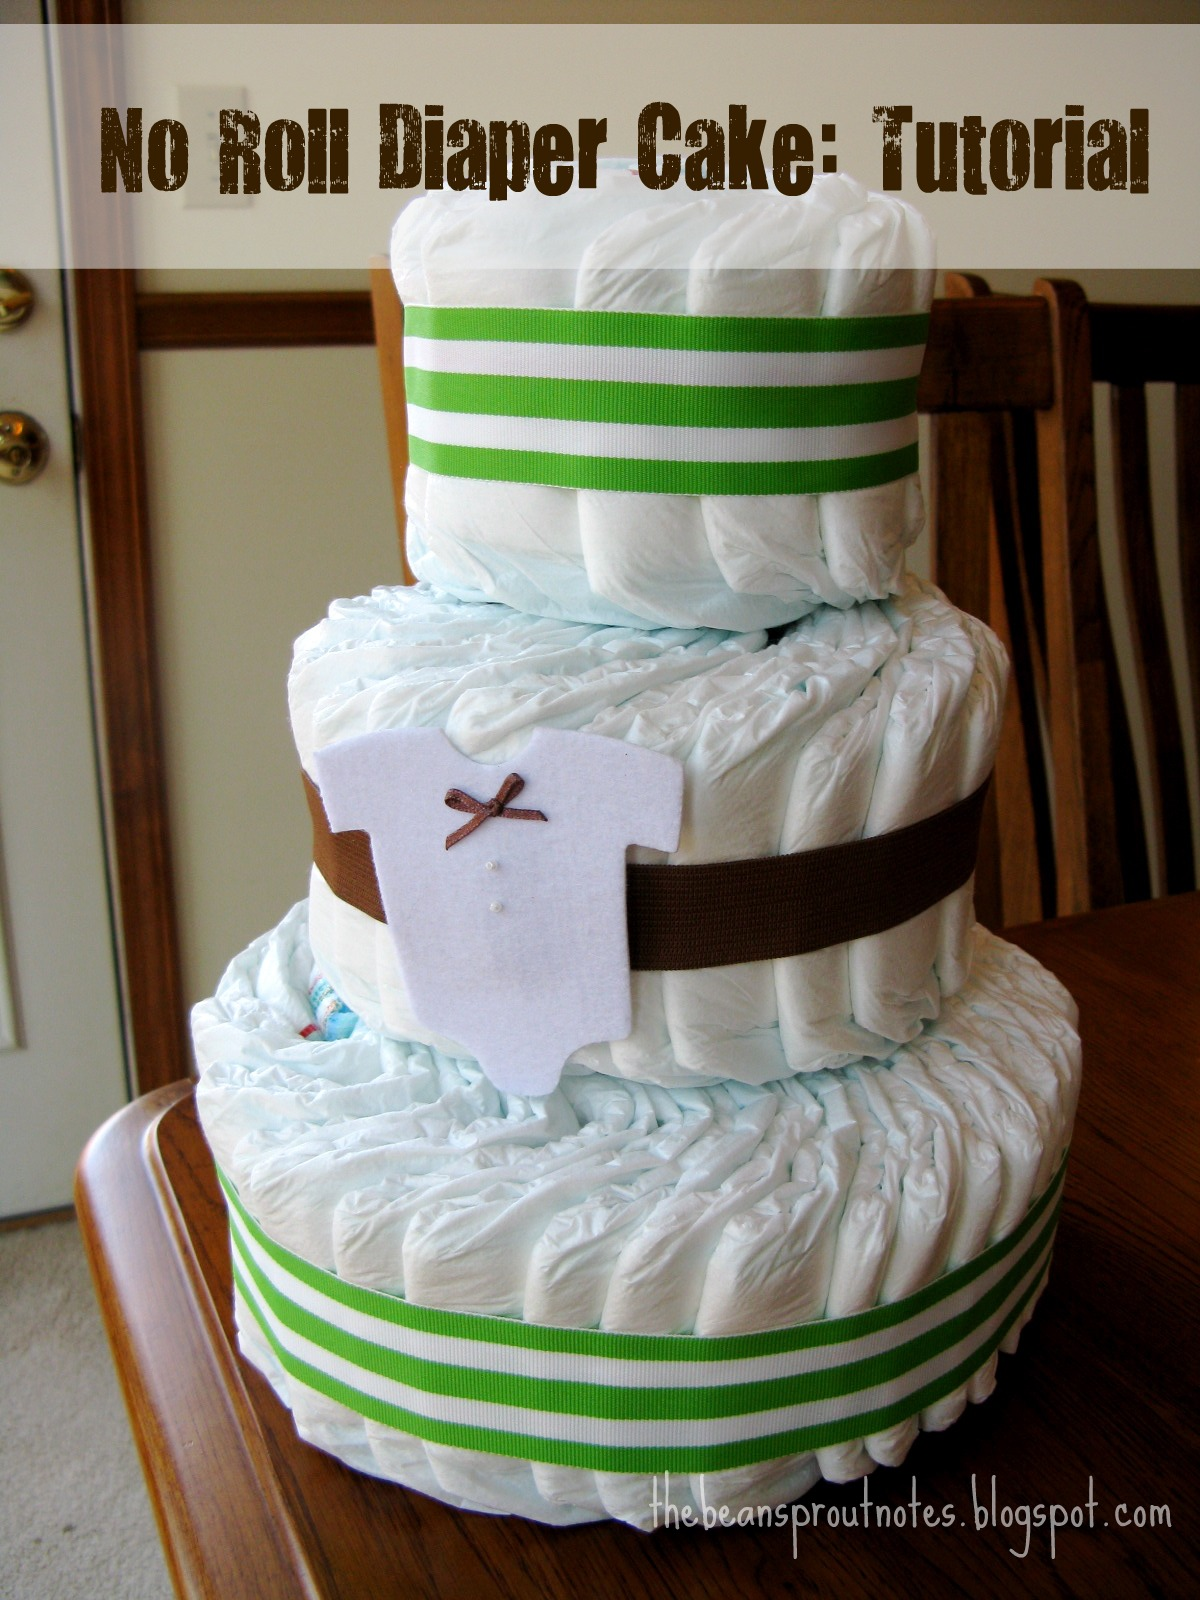 No Roll Diaper Cake